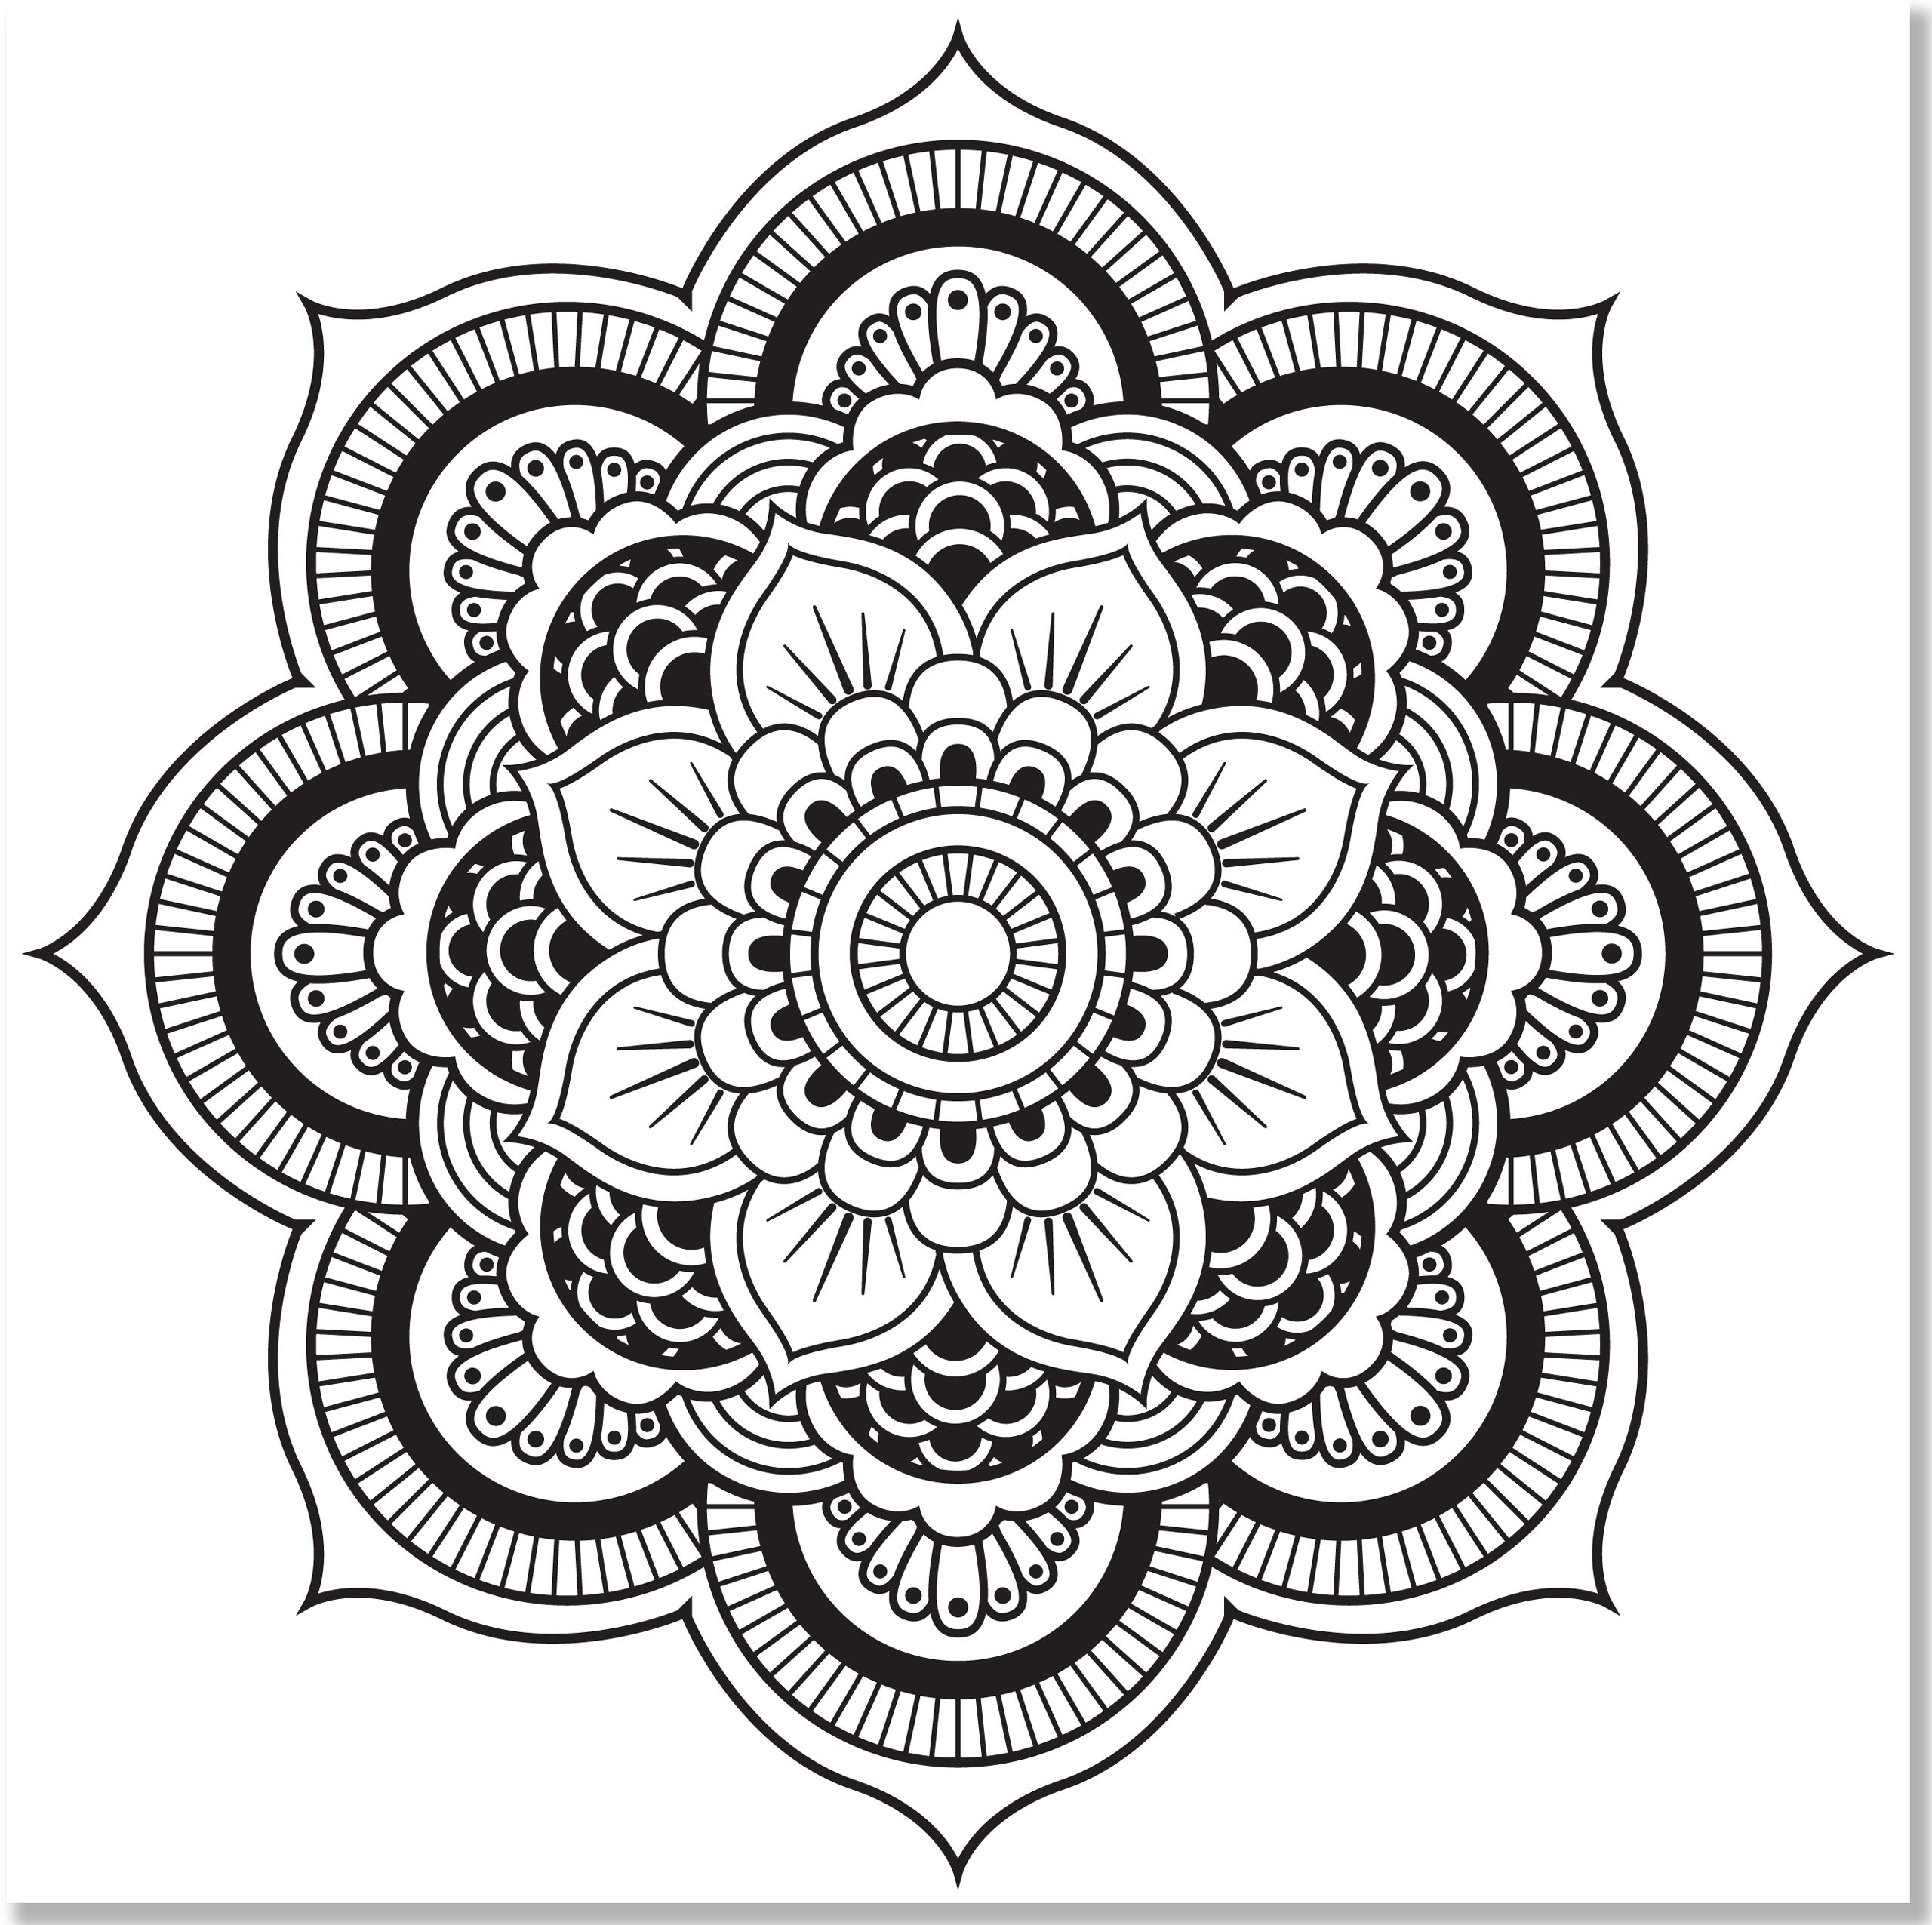 Coloring adults books - Amazon Com Mandala Designs Adult Coloring Book 31 Stress Relieving Designs Studio 9781441317445 Peter Pauper Press Books